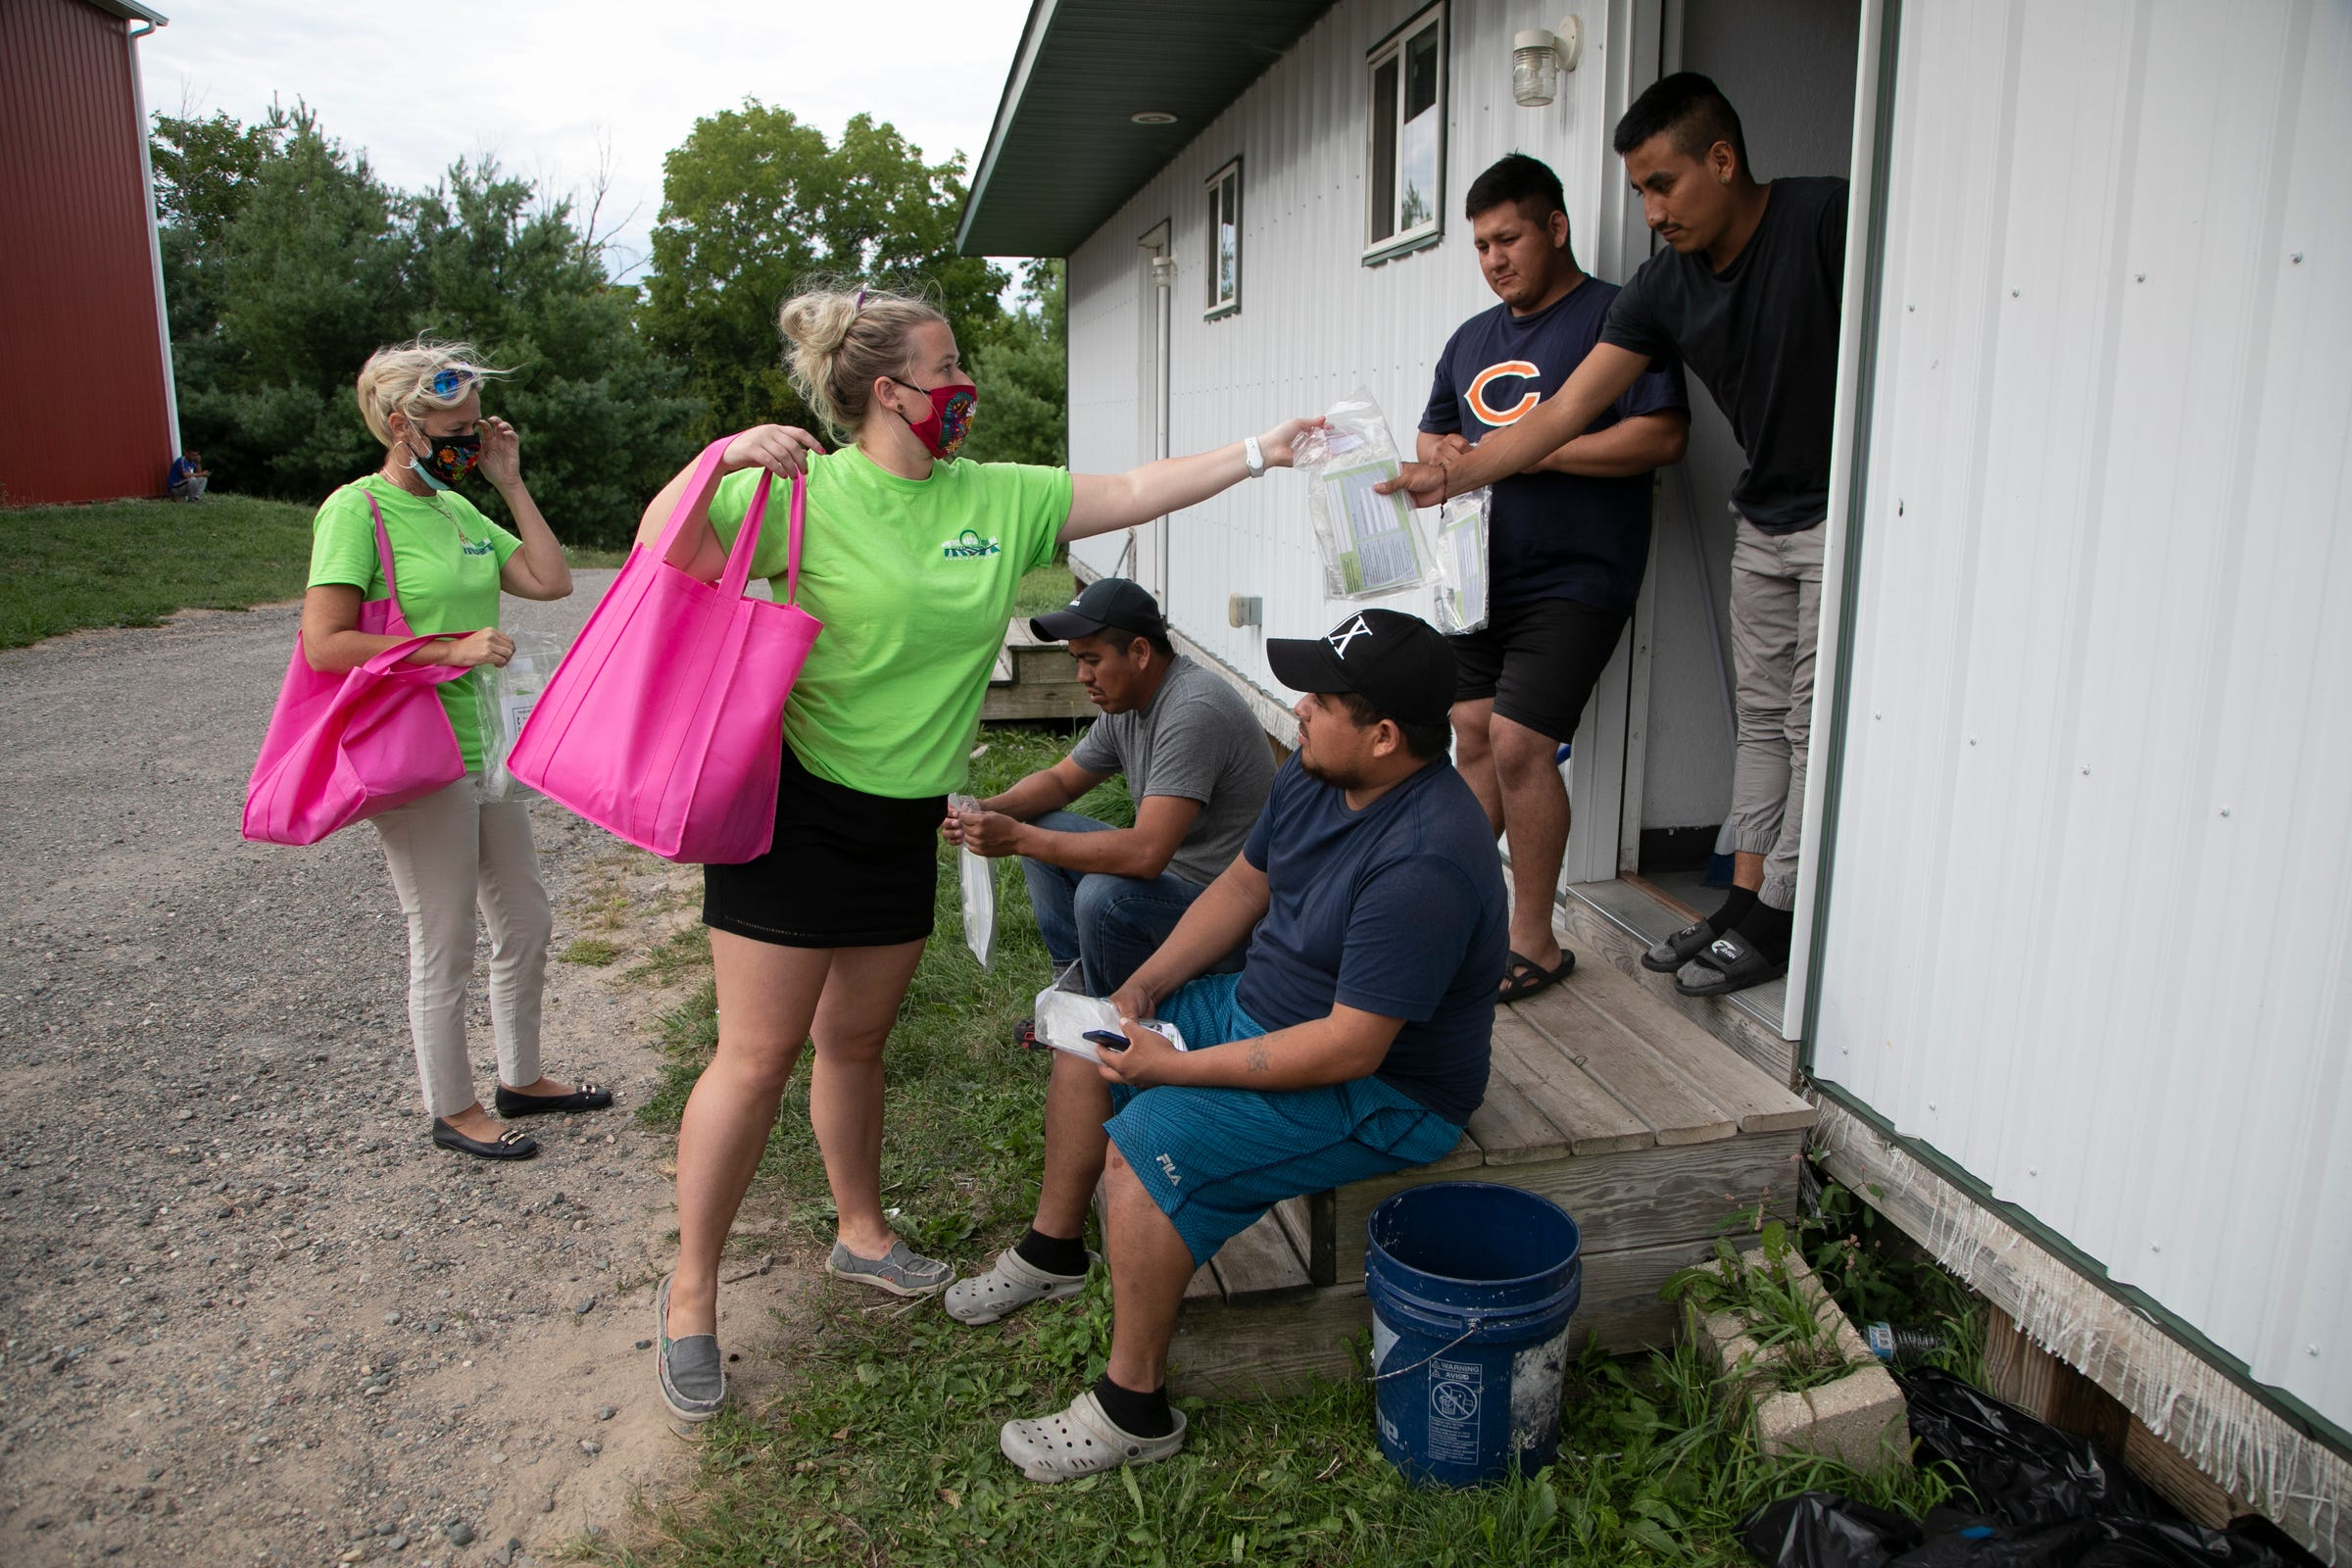 Migrant Legal Aid Executive Director Teresa Hendricks, left, and law clerk Molly Spaak hand out bags of face masks, hand sanitizer and gloves at a migrant camp in Kent County on Monday, Aug. 31, 2020.